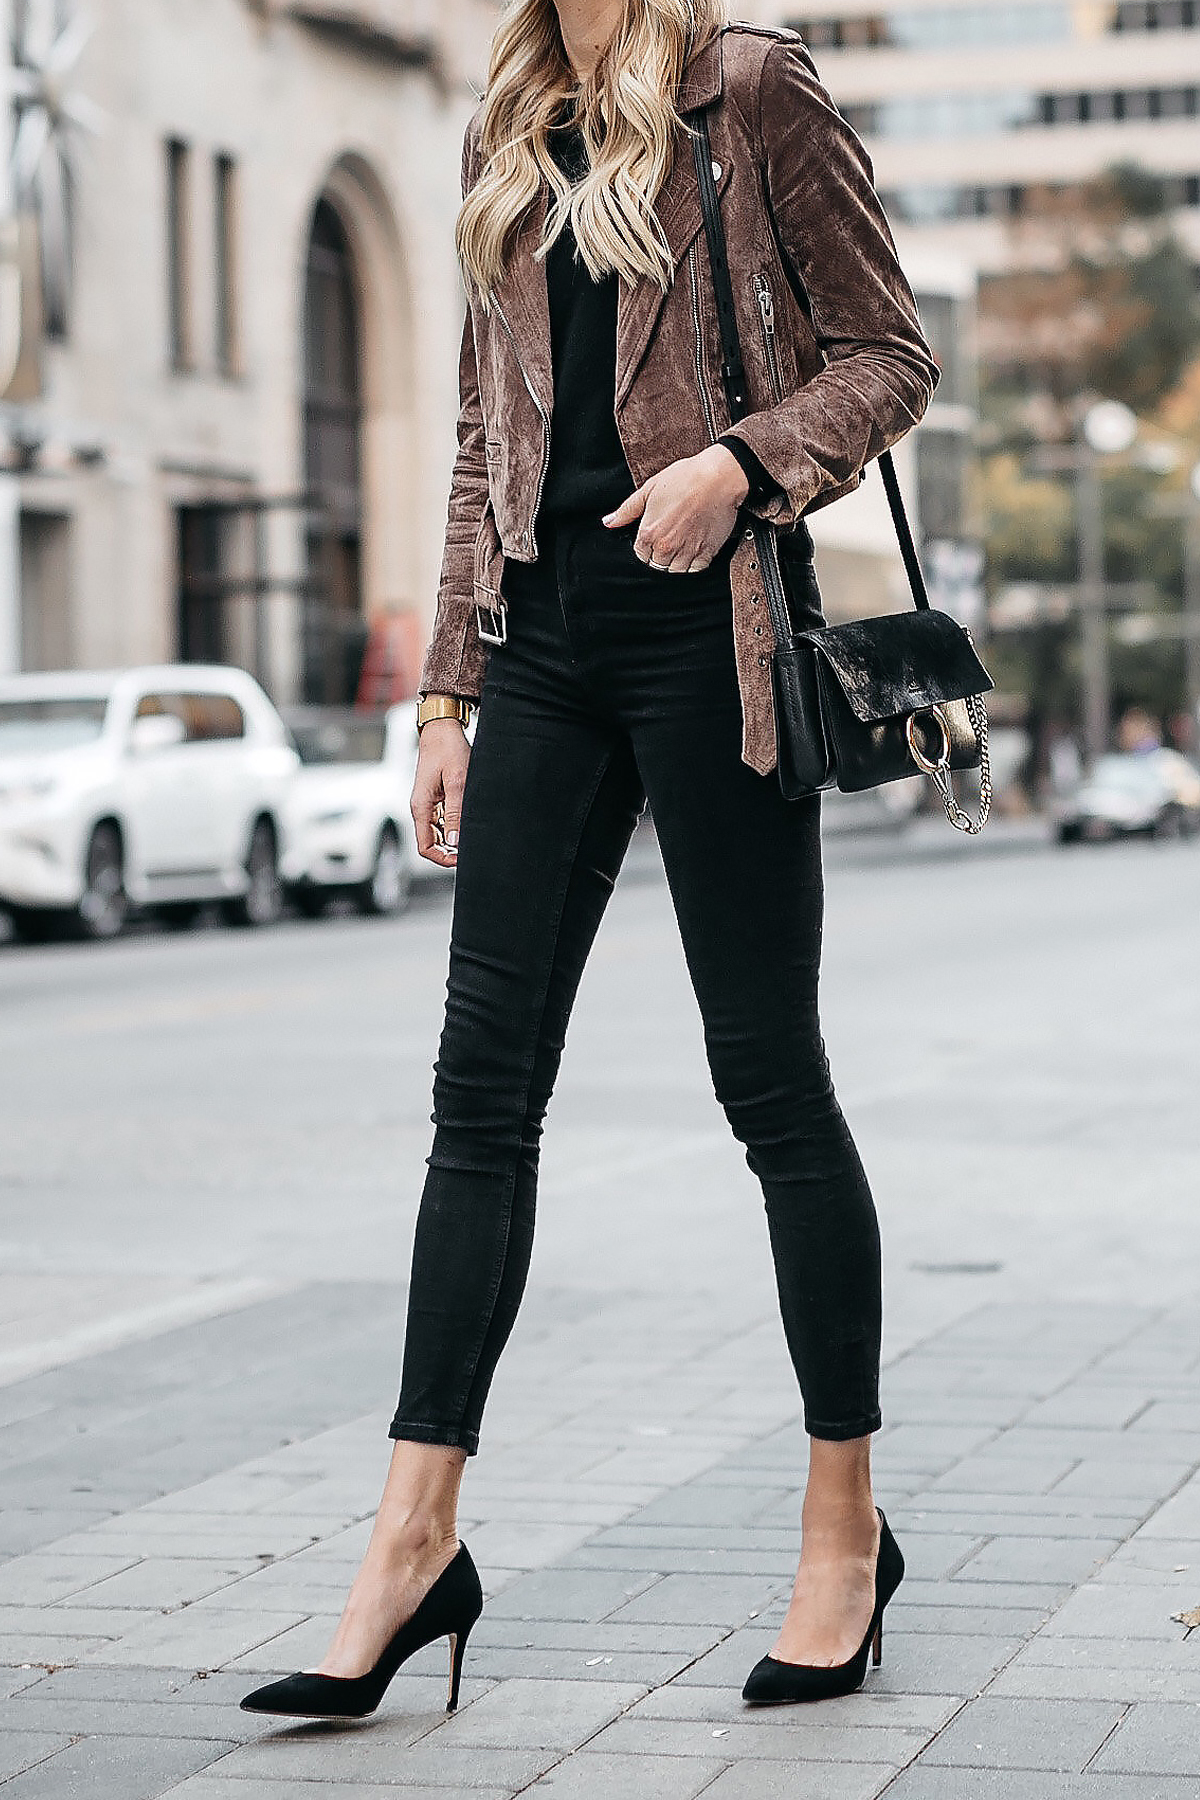 Blanknyc Suede Moto Jacket Black Skinny Jeans Black Pumps Chloe Faye Handbag Fashion Jackson Dallas Blogger Fashion Blogger Street Style